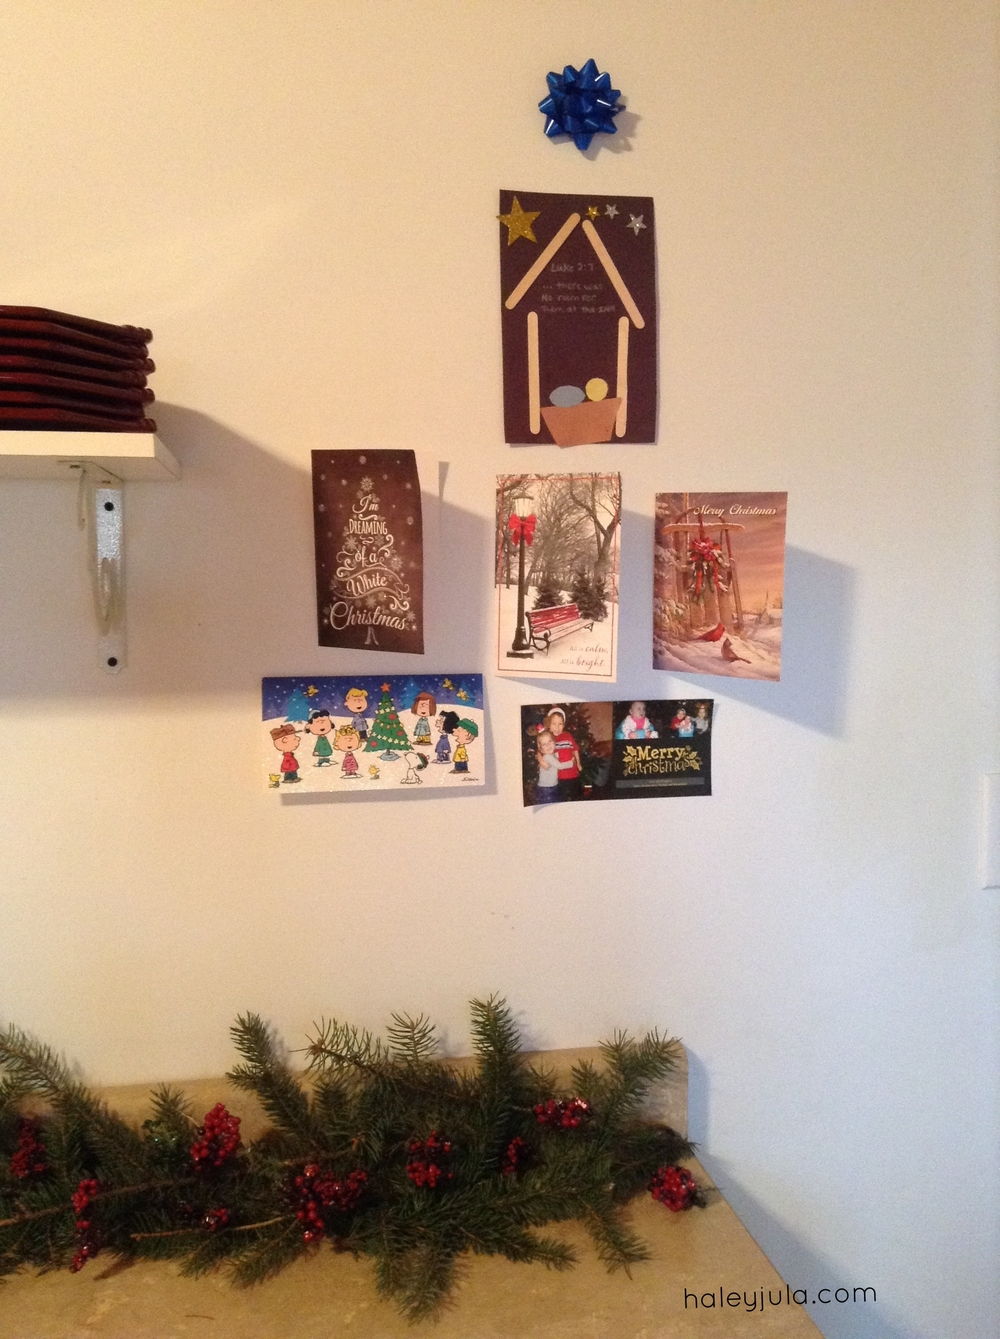 Wall of cards. Added to daily. Going for shape of Christmas Tree.